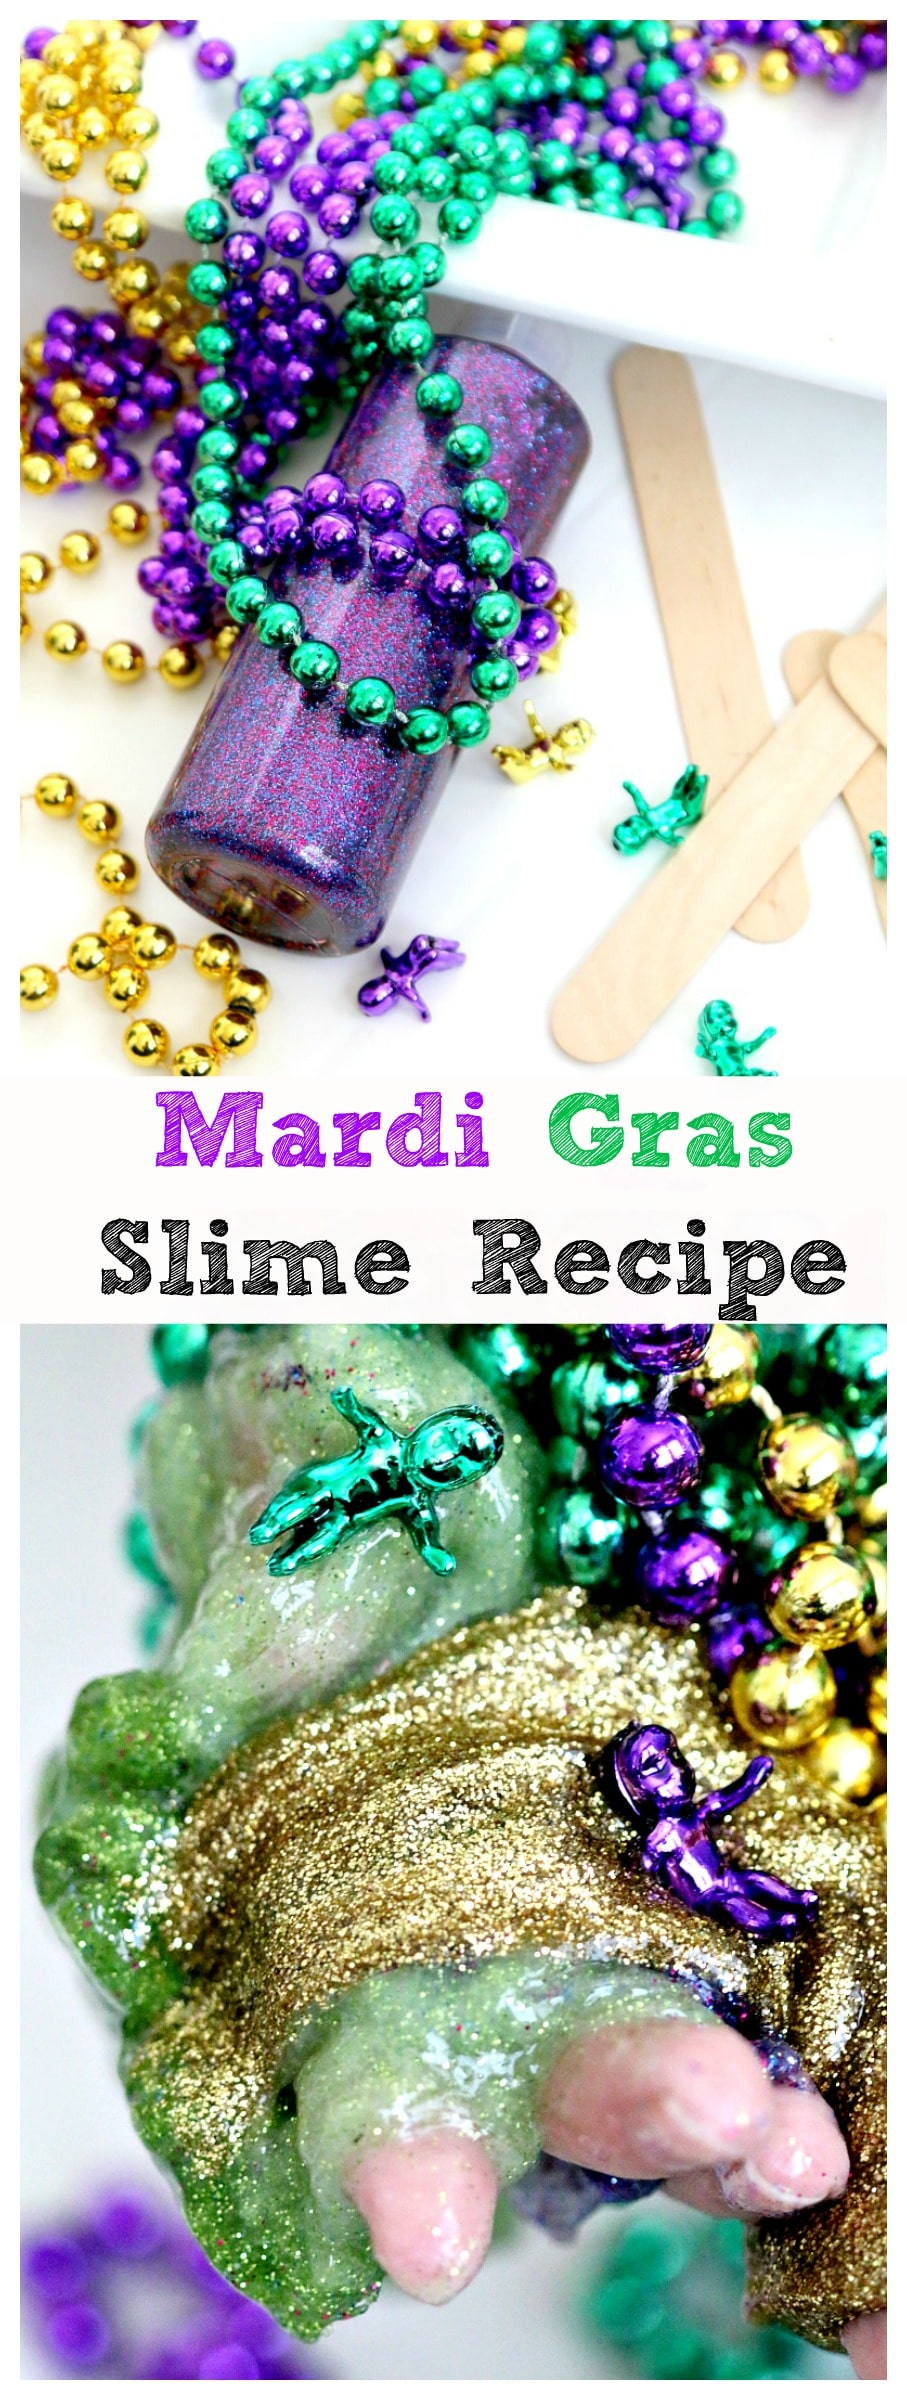 Mardi Gras Slime Recipe: Get messy with this three colored slime